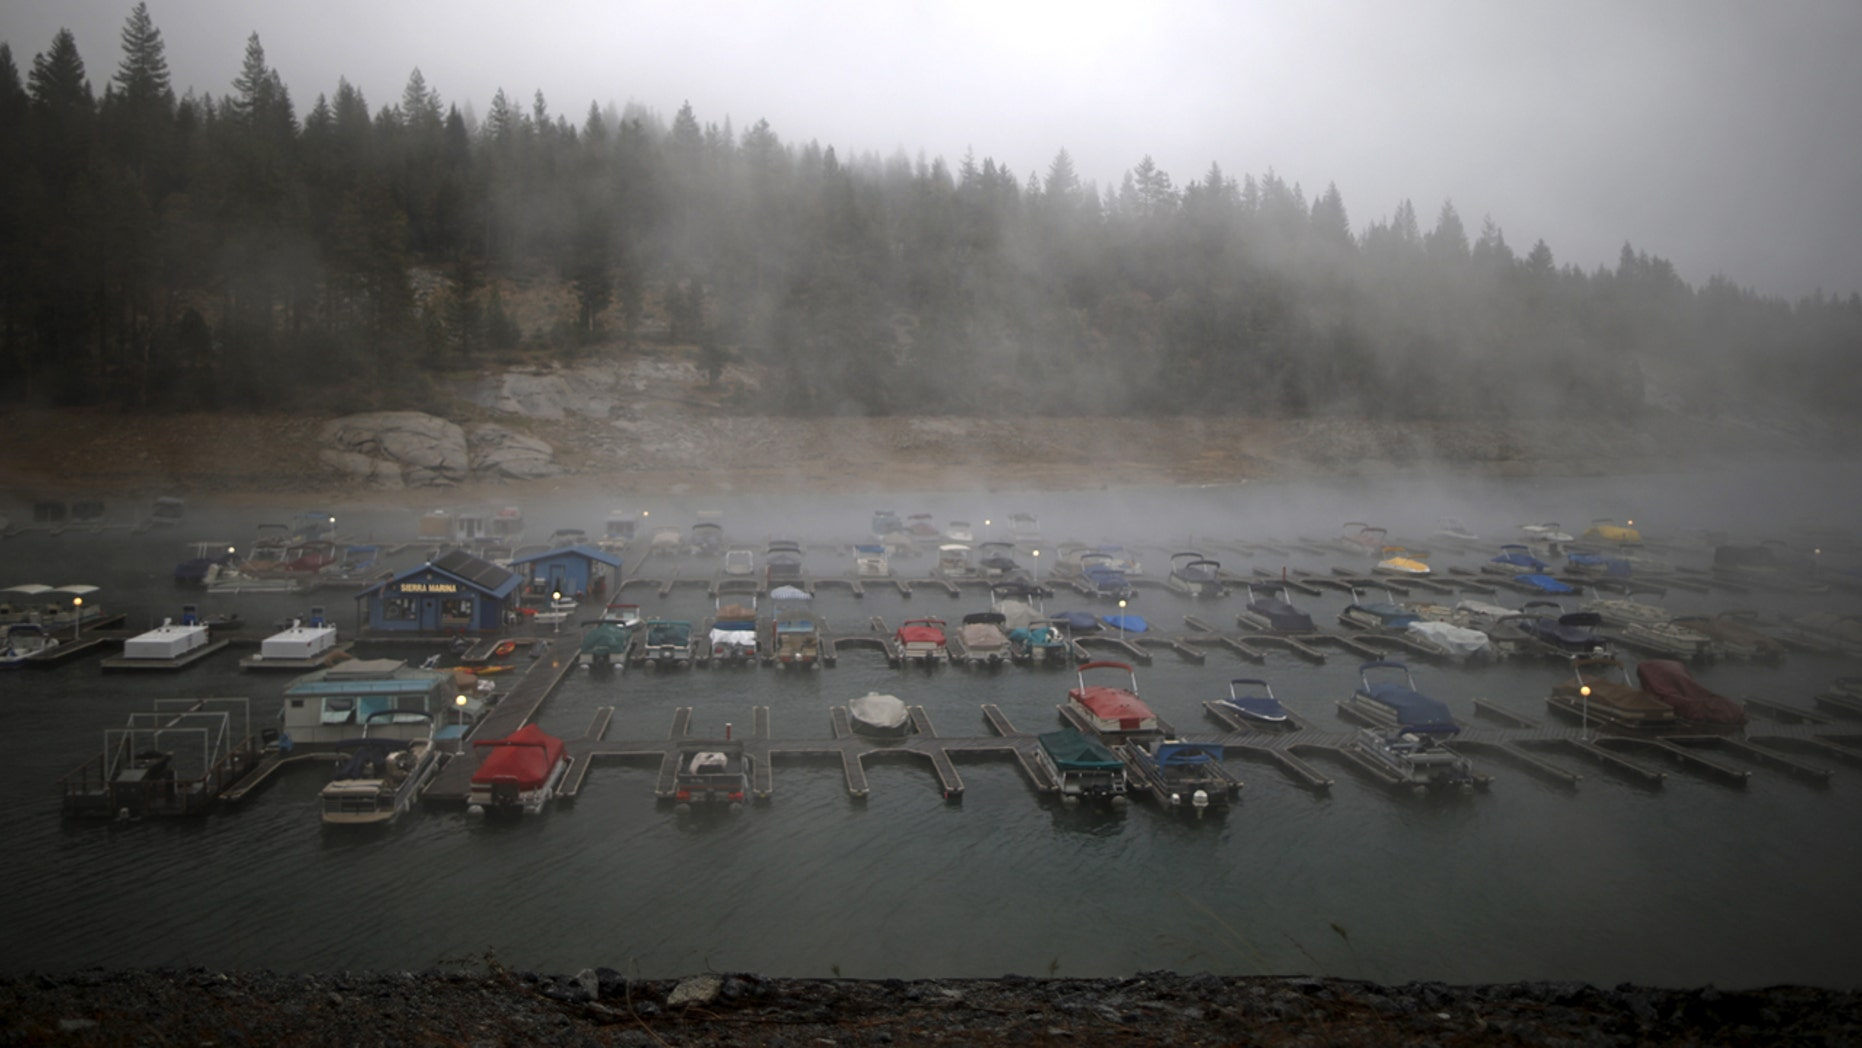 Rain falls on Shaver Lake in the High Sierra, California, United States May 7, 2015.